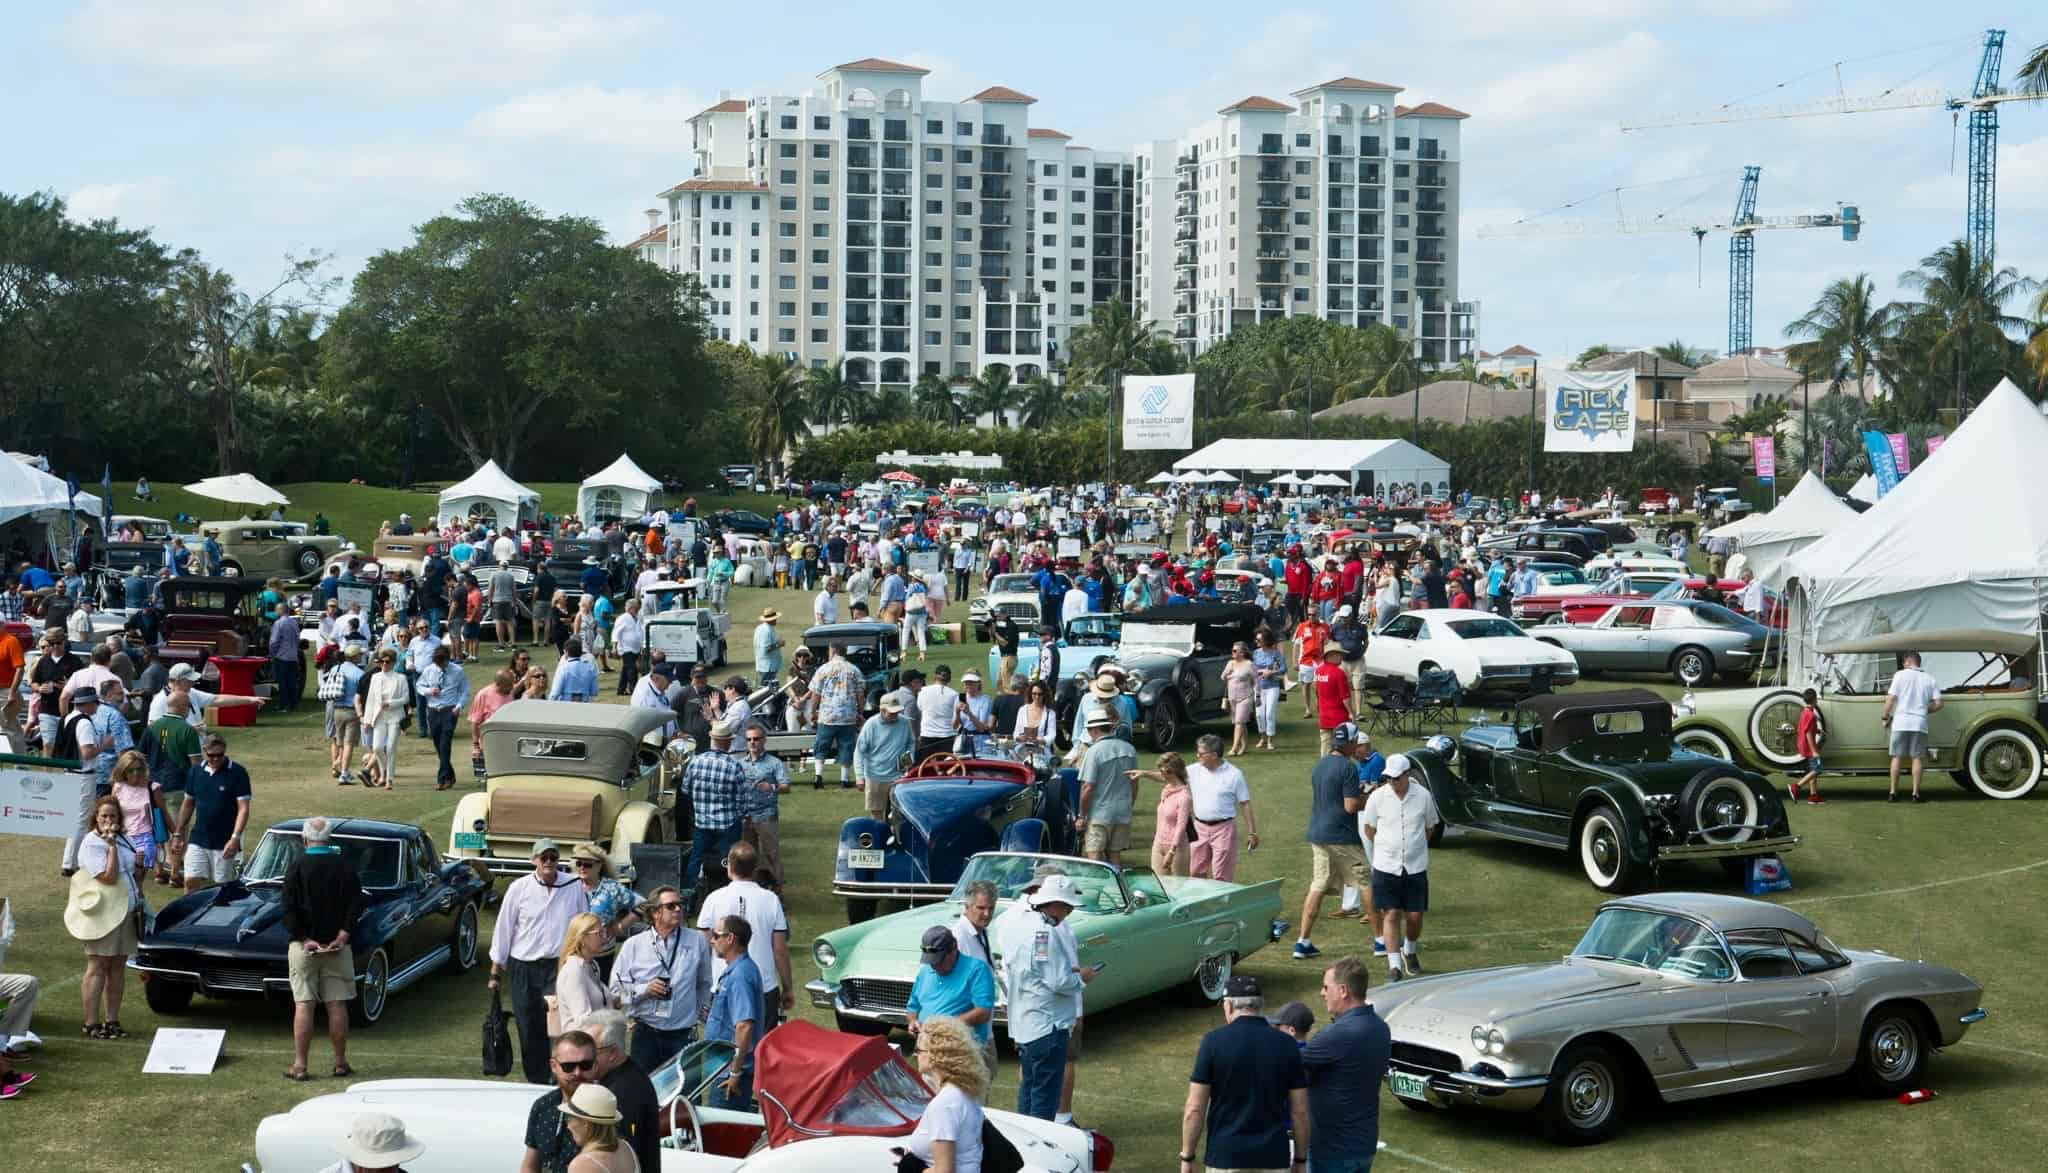 The scene at the 14th annual Boca Raton Concours d'Elegance | Boca Raton Concours photos